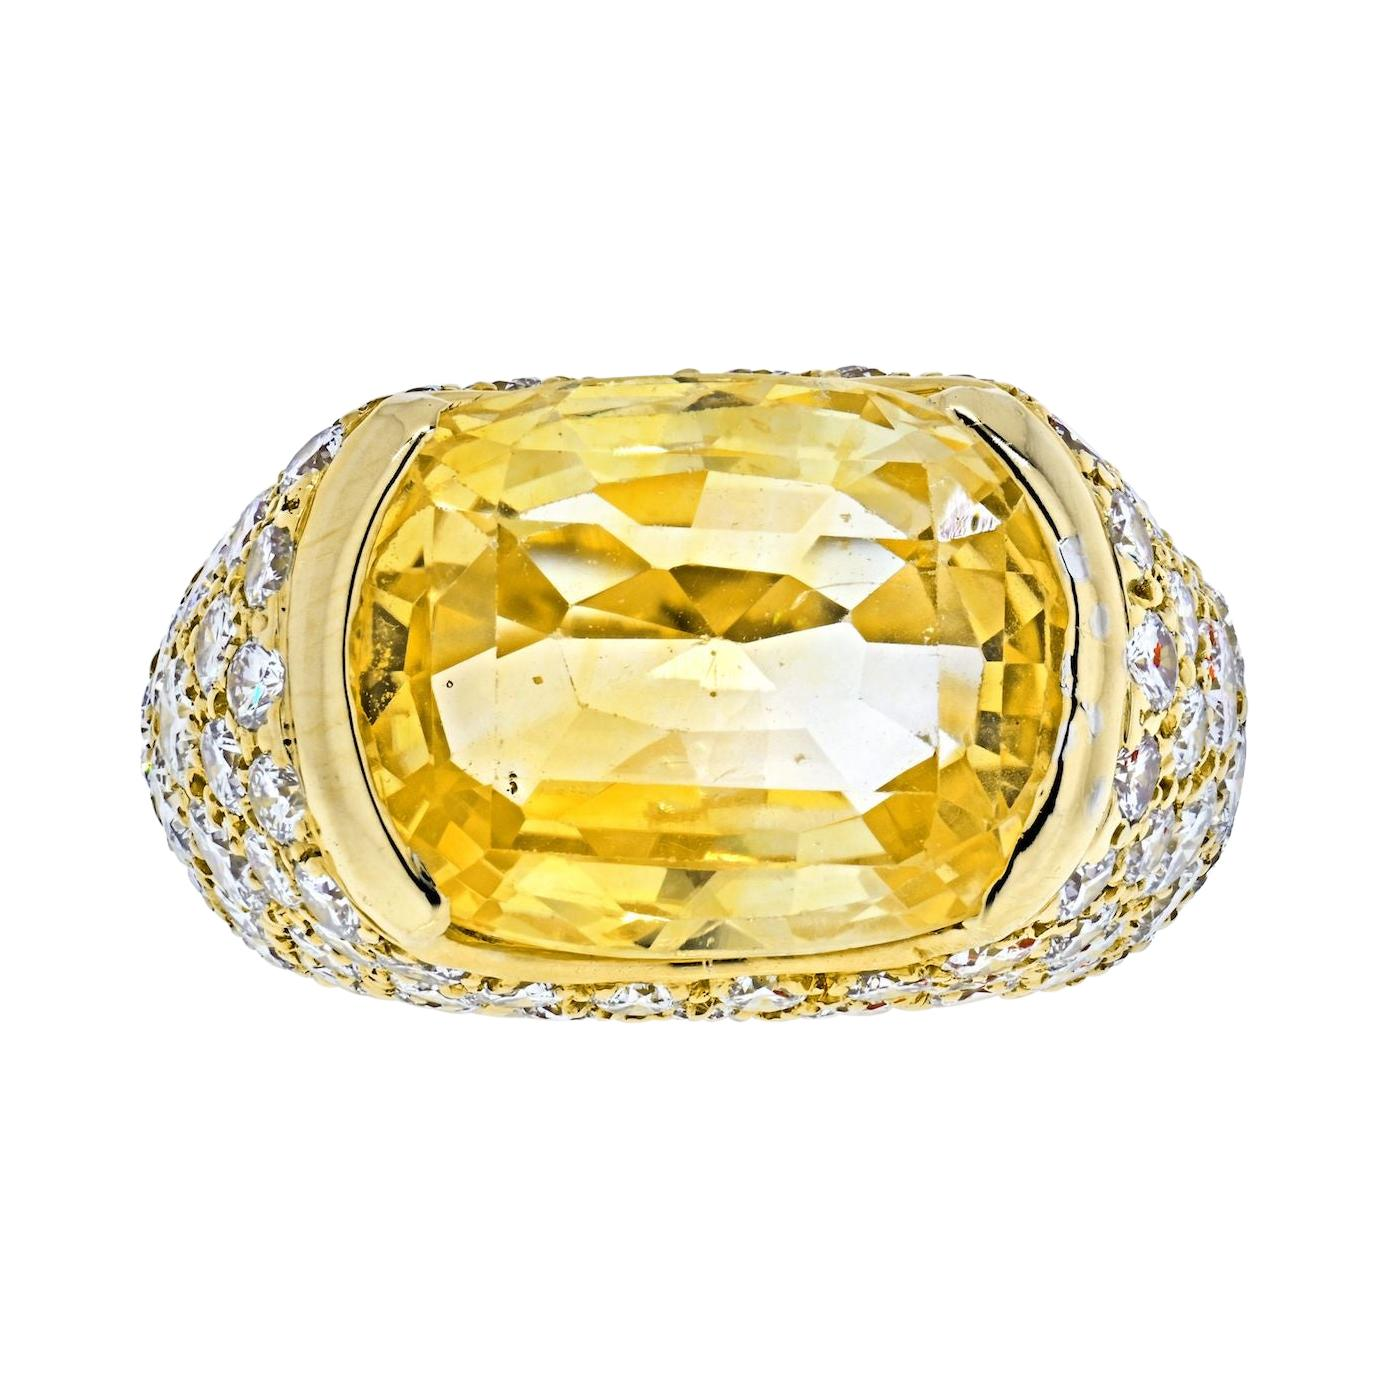 Van Cleef & Arpels 18k Yellow Gold Oval Cut Yellow Sapphire Pave Diamond Ring